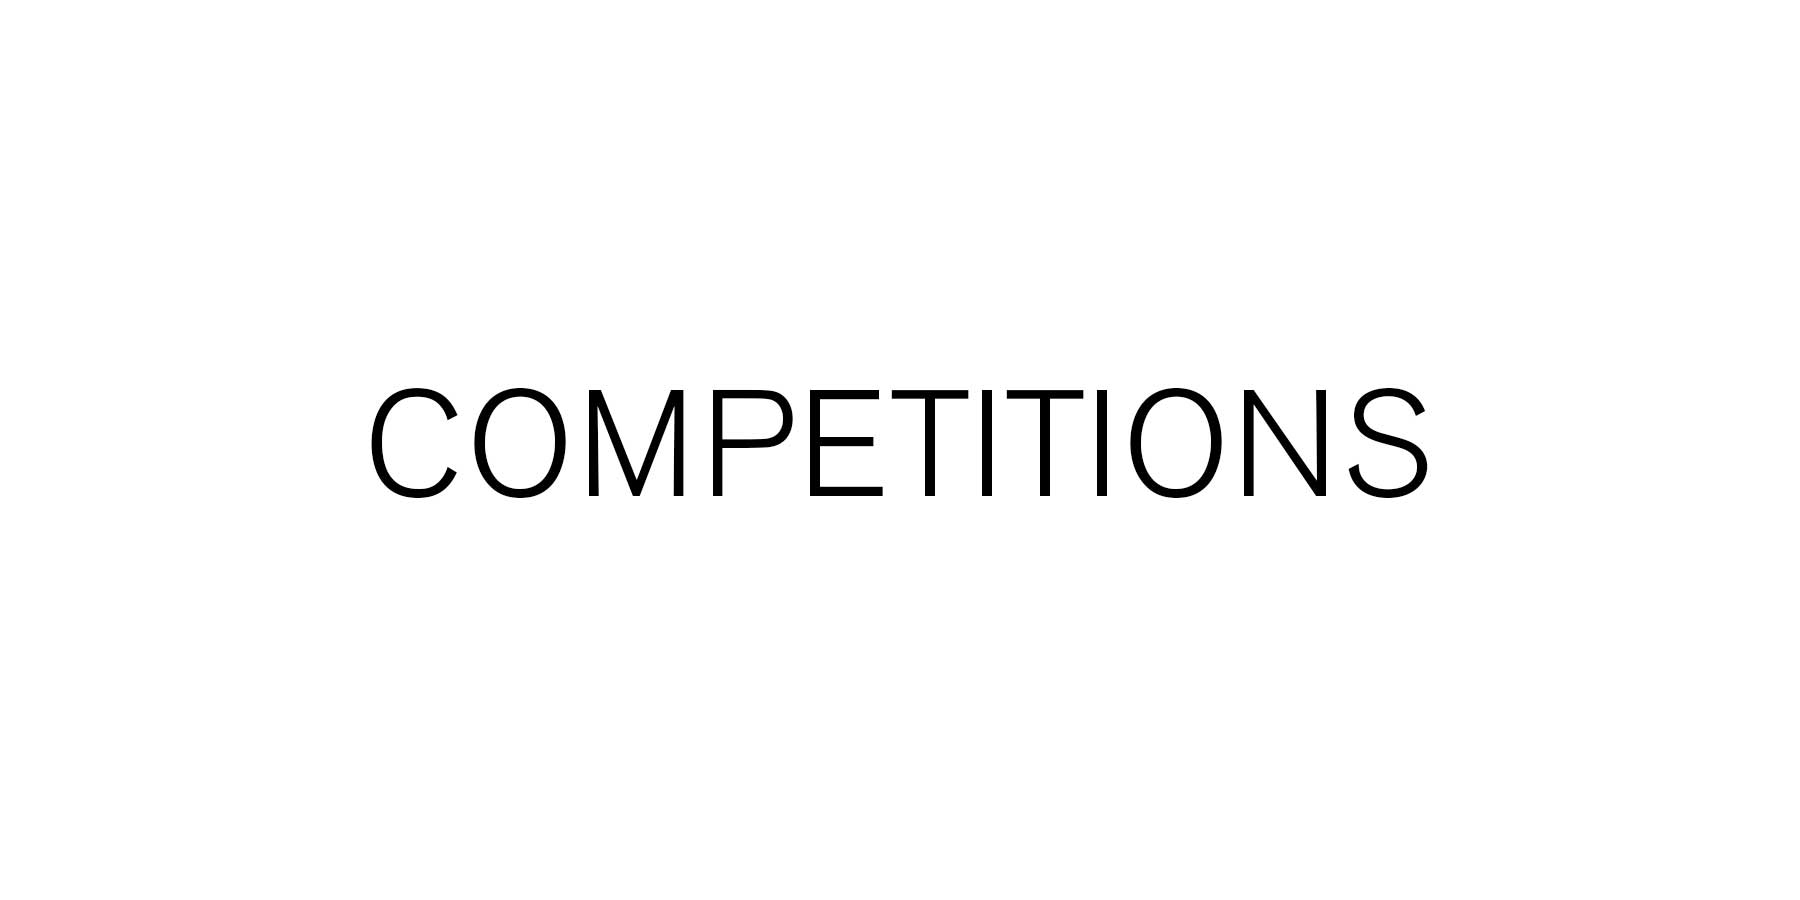 competitions.jpg